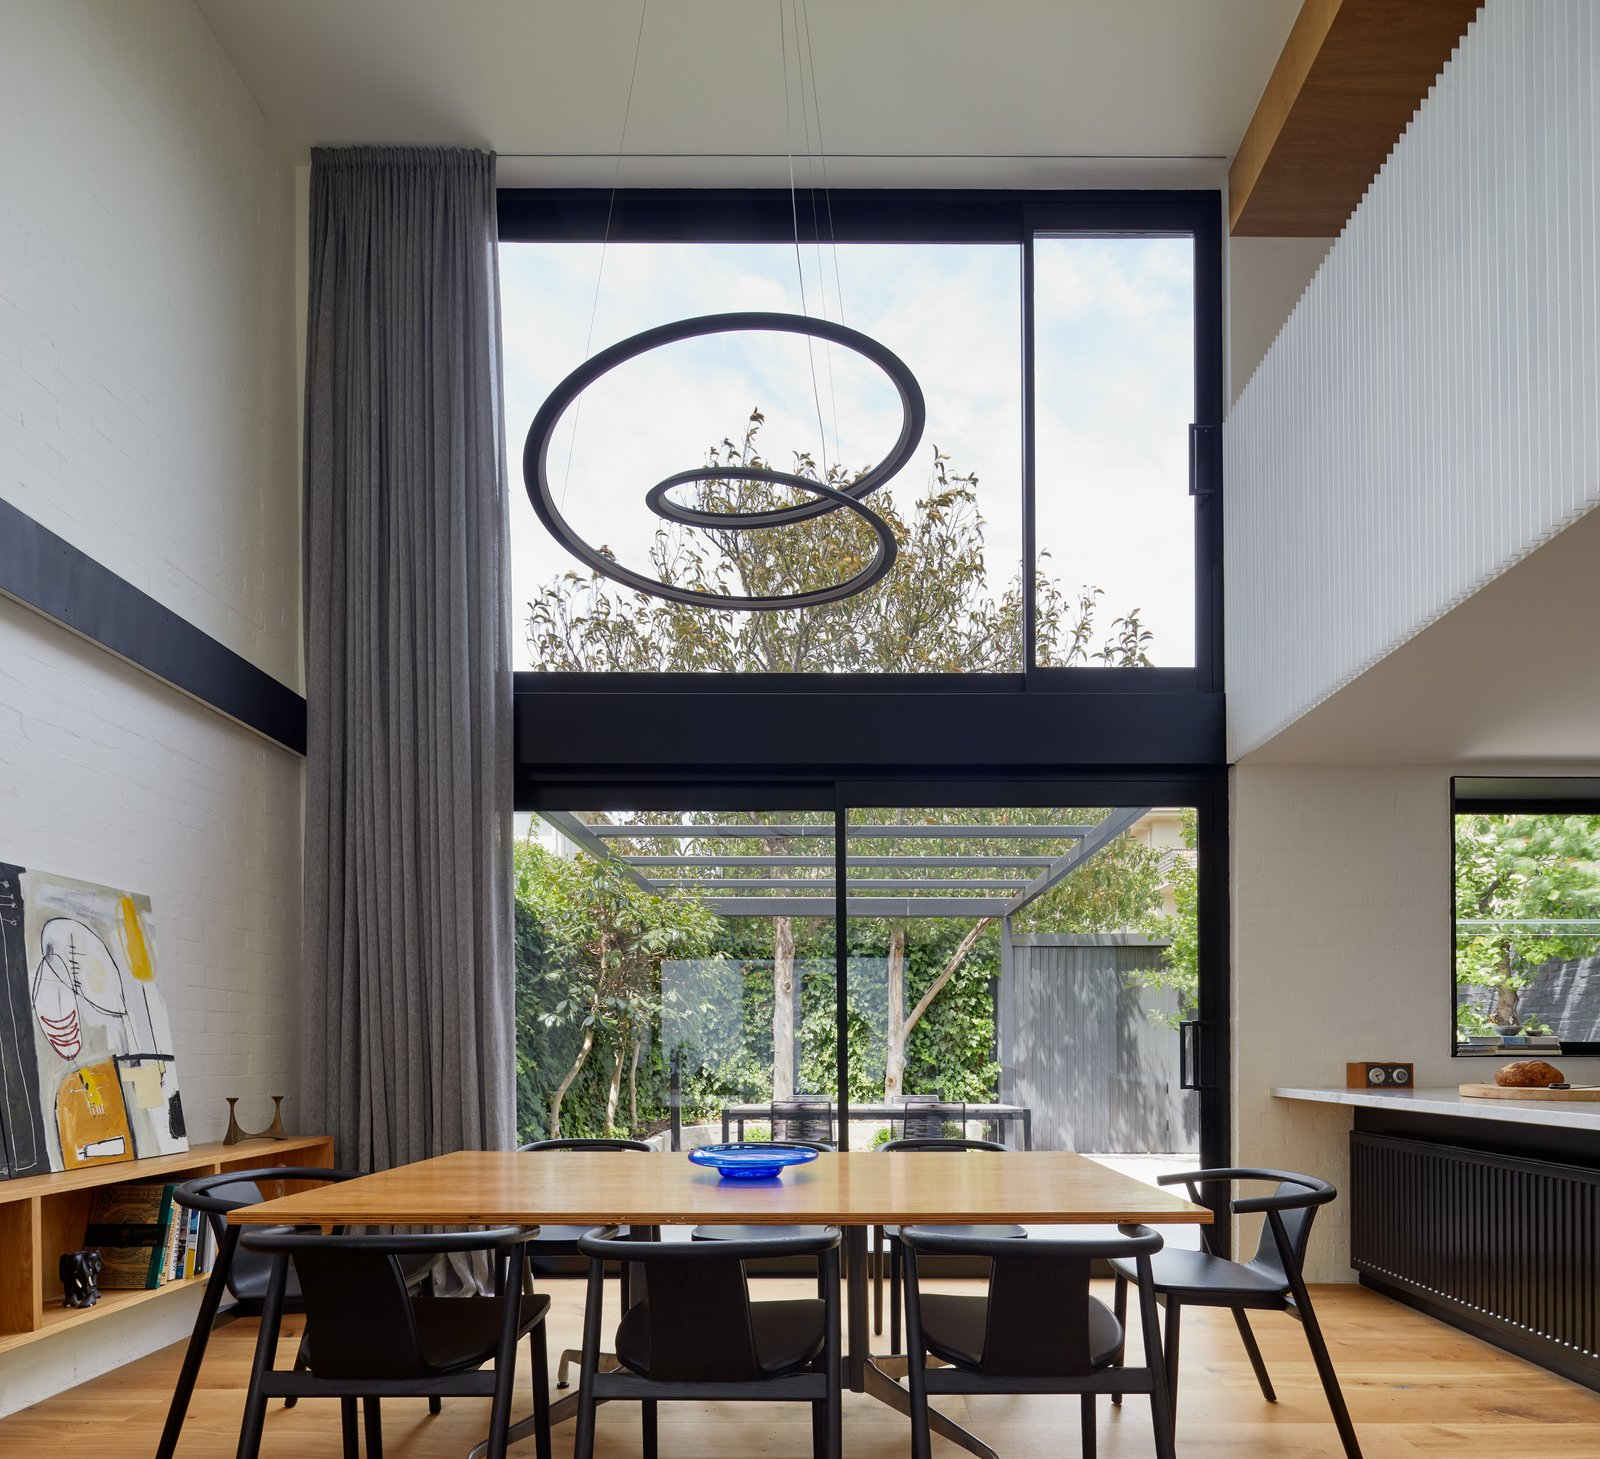 Dining Room, Accent Lighting, Recessed Lighting, Chair, Table, Light Hardwood Floor, and Pendant Lighting Void above Dining space  South Yarra Void House